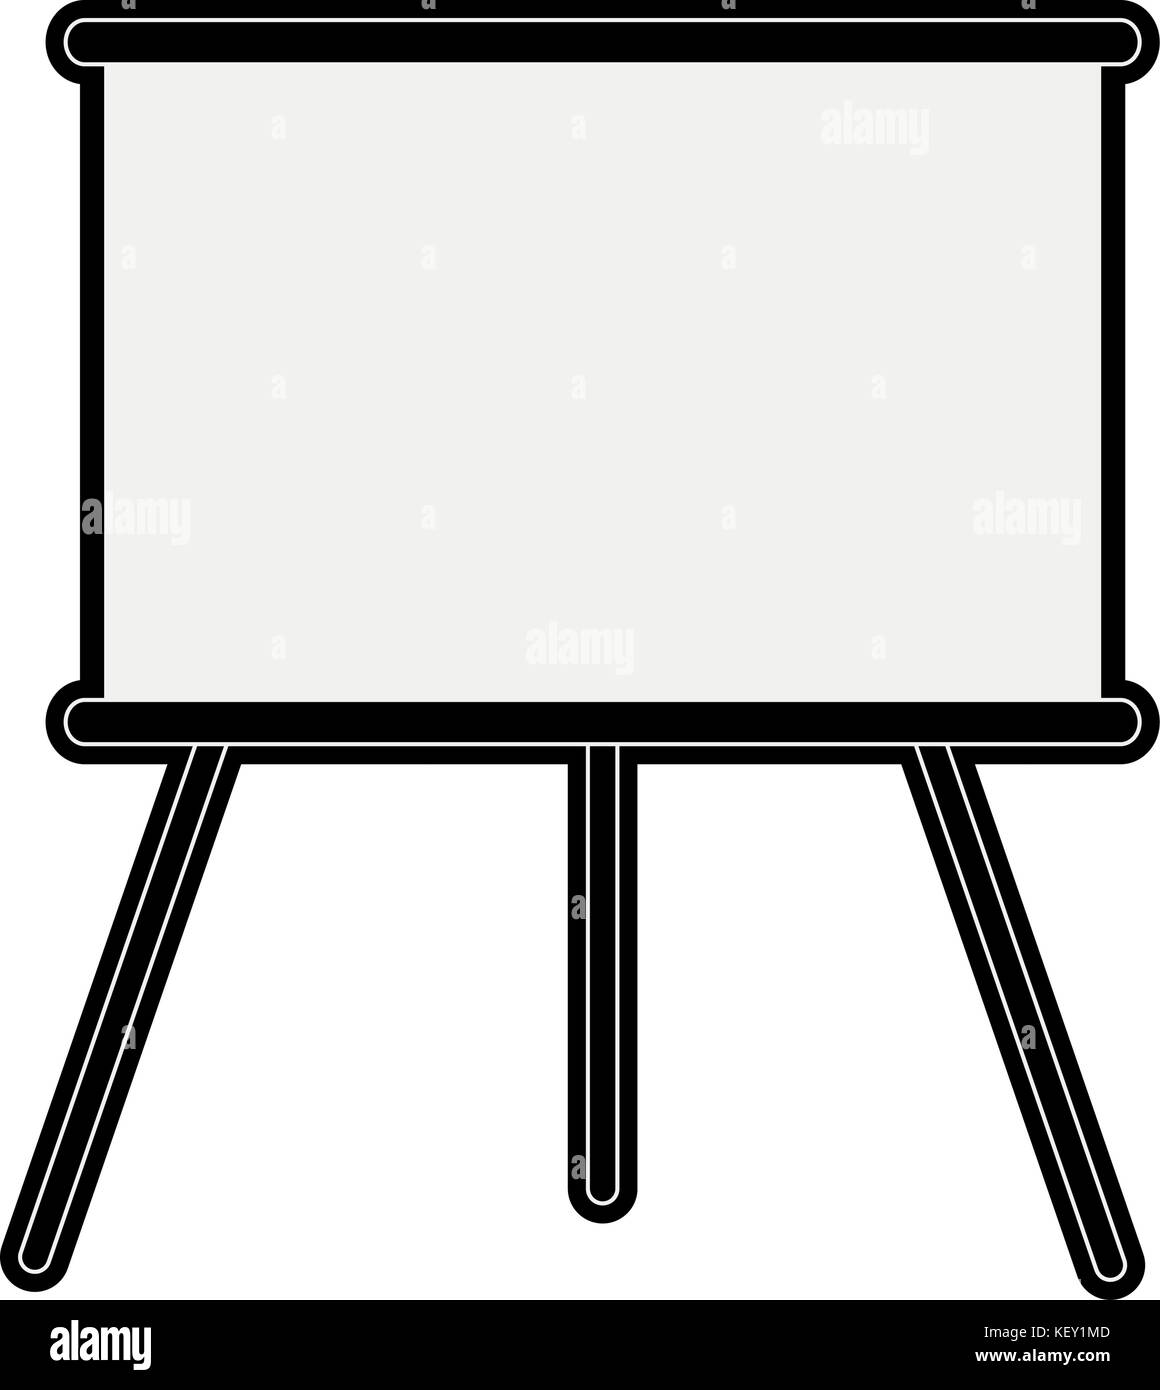 Blank business presentation - Stock Image